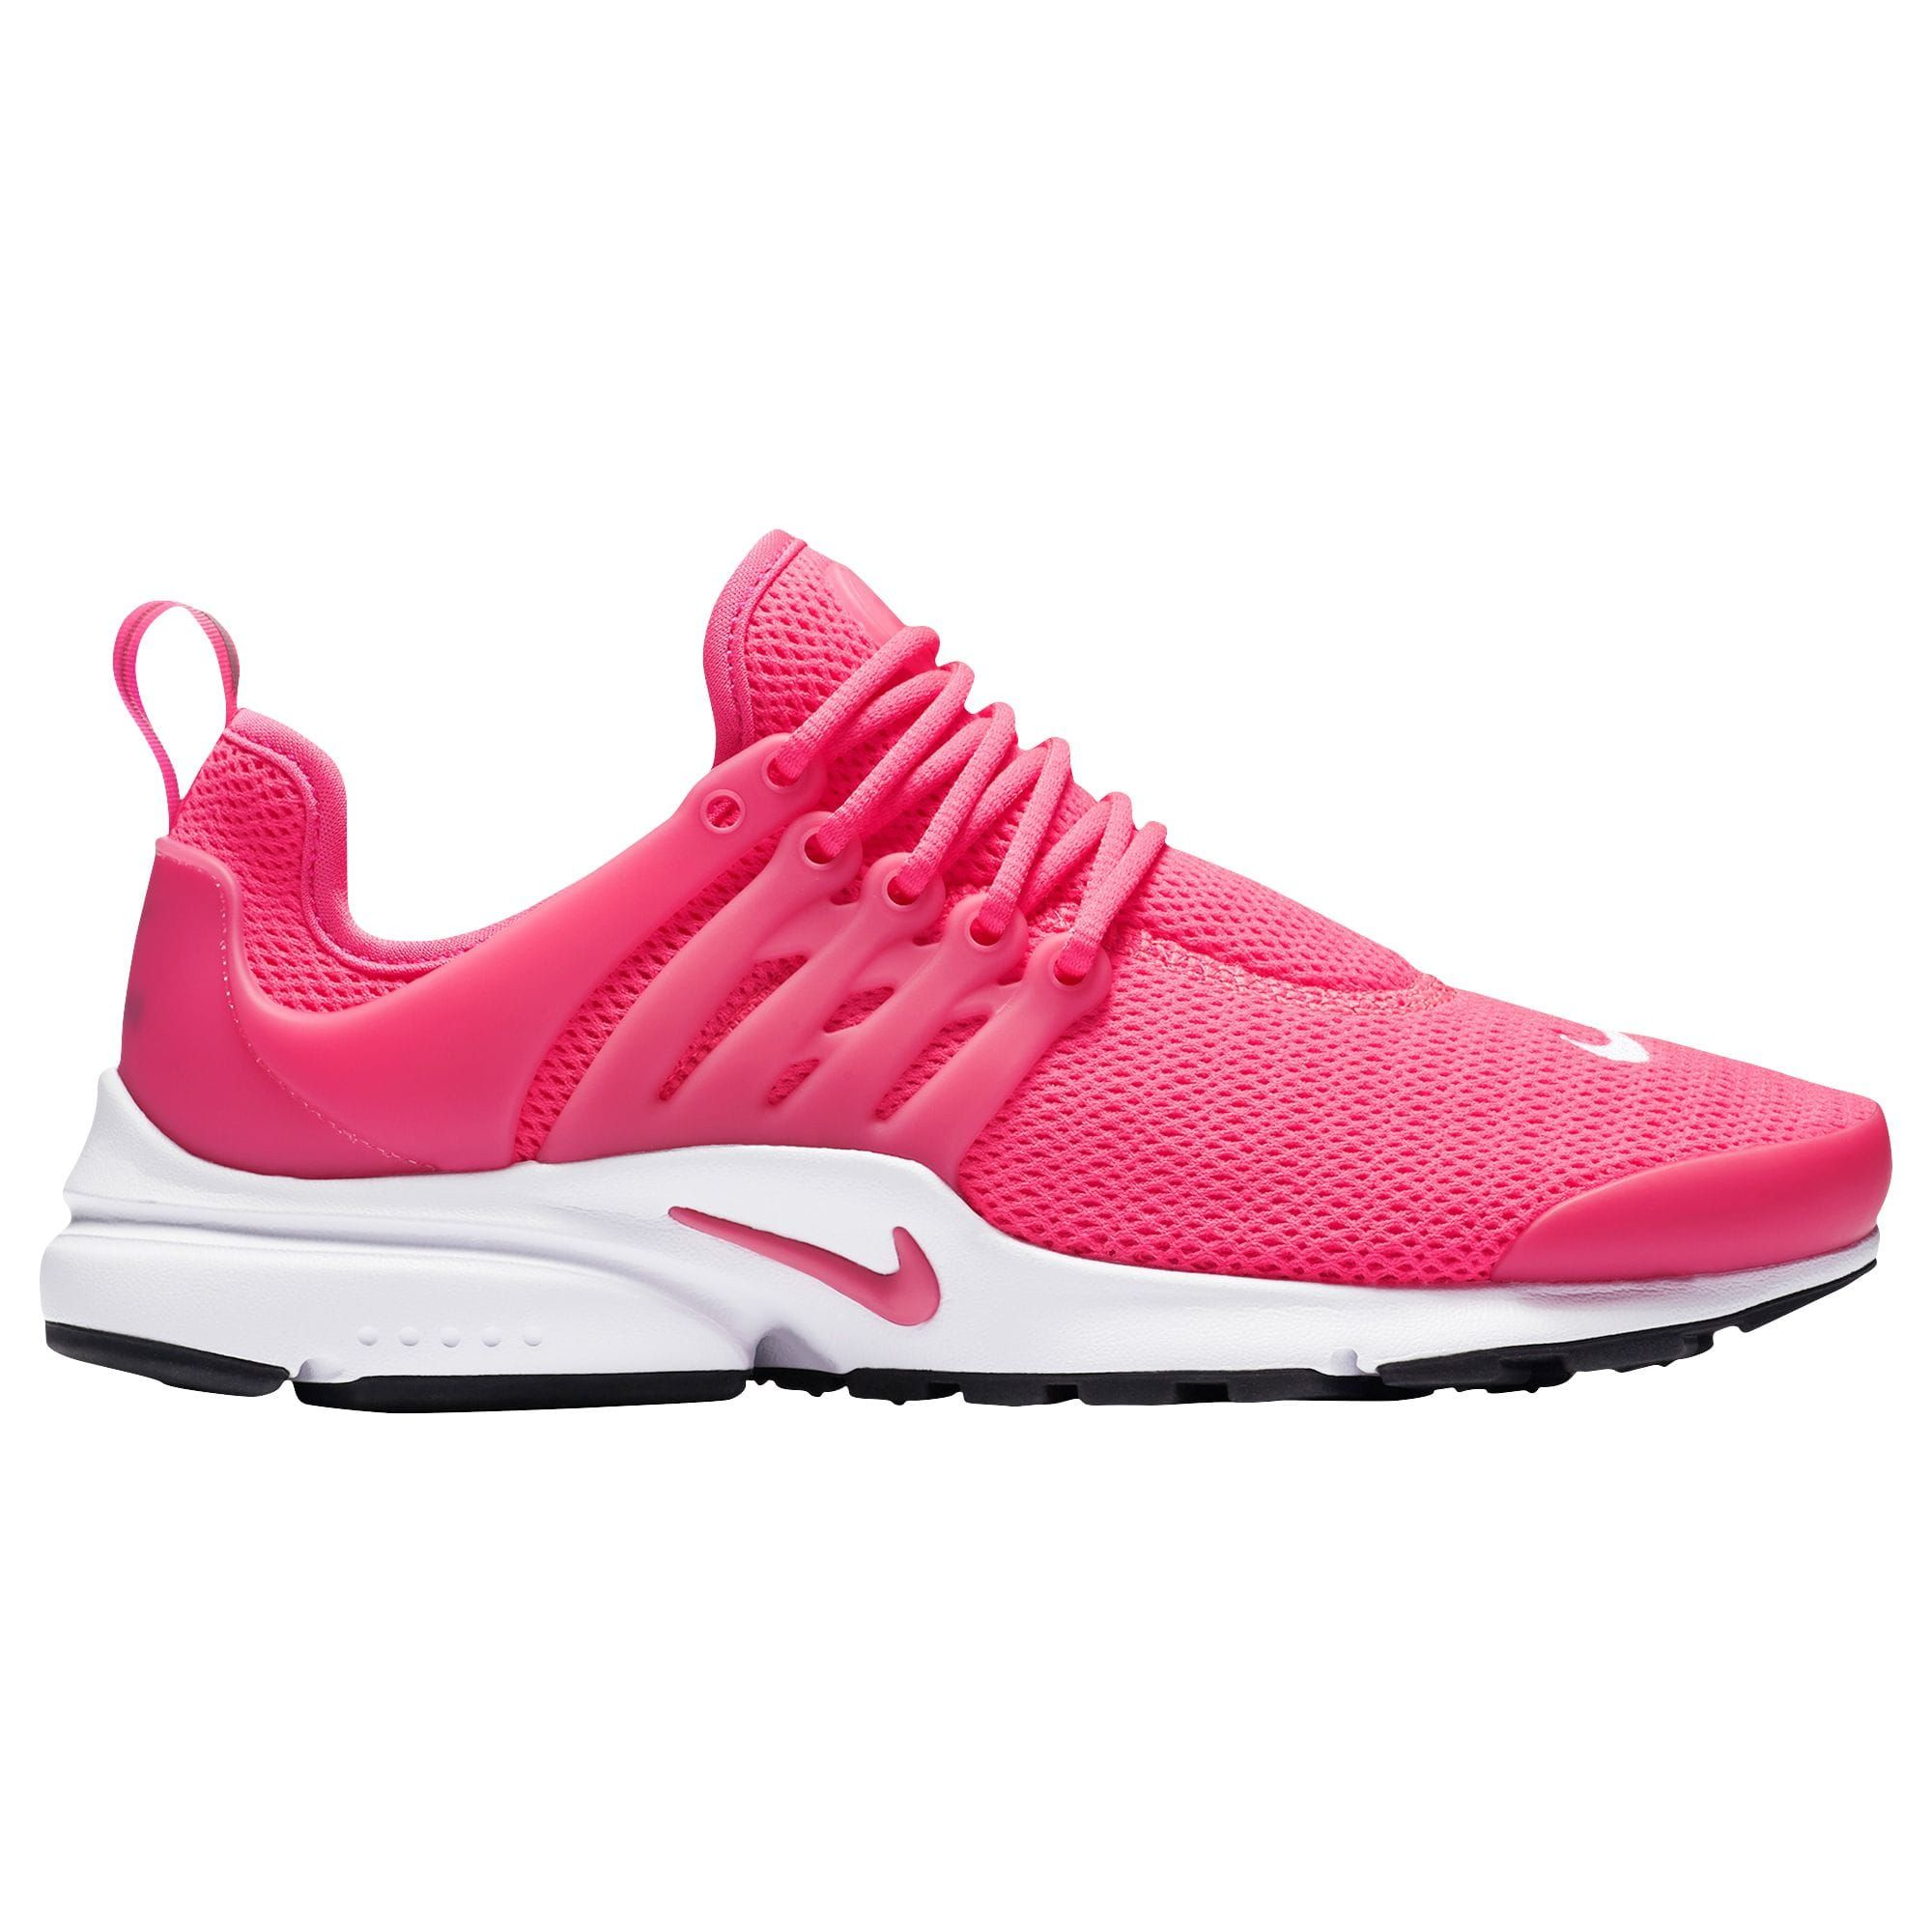 wholesale dealer 62034 b1a06 Nike Air Presto - Women's at Champs Sports | Shoes | Running ...